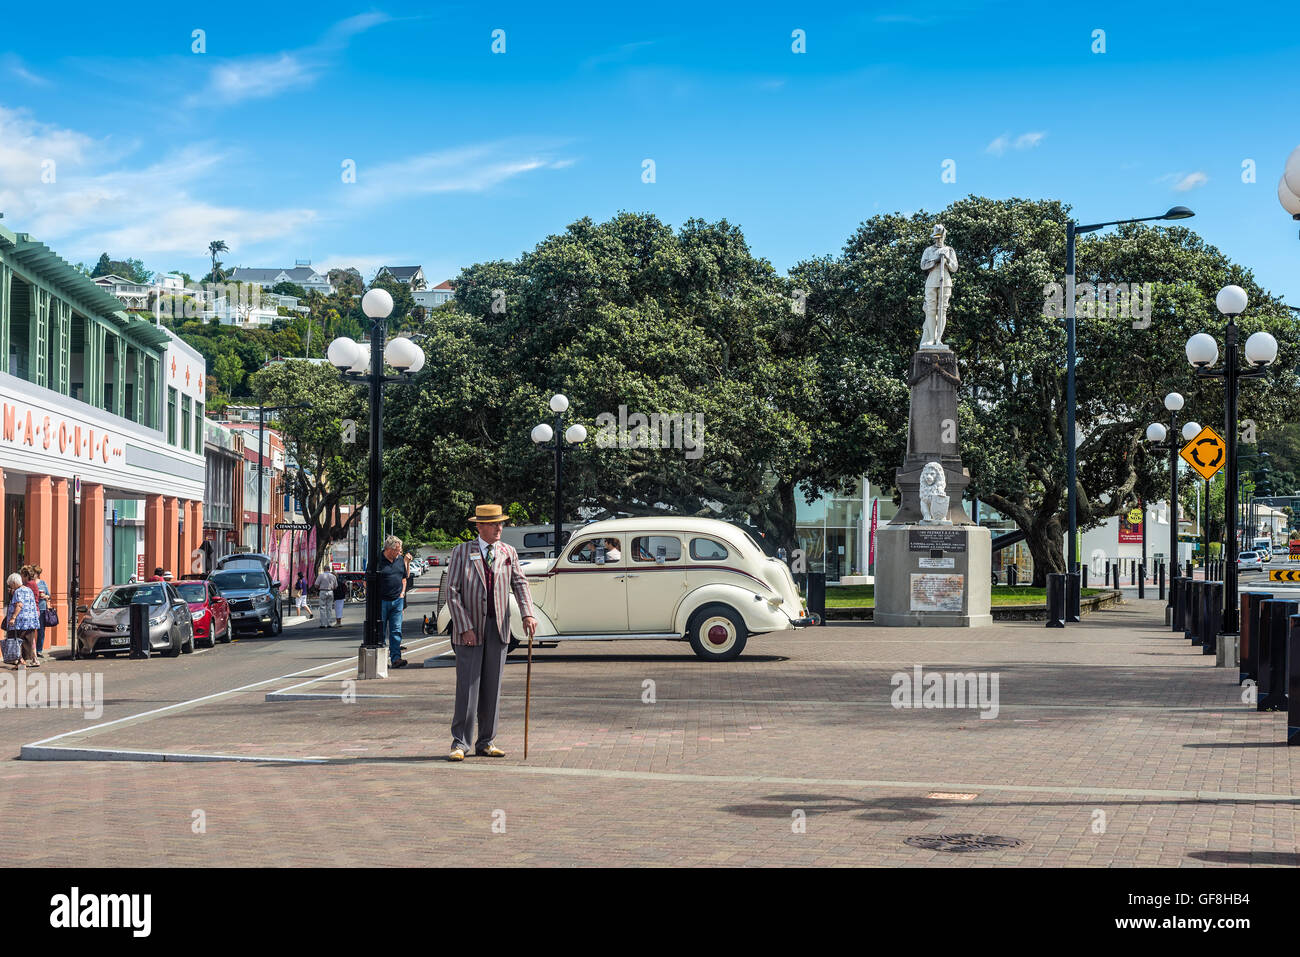 Elderly man 1930s dressed and vintage motorcar on the Marine Parade in the art deco town of Napier - Stock Image